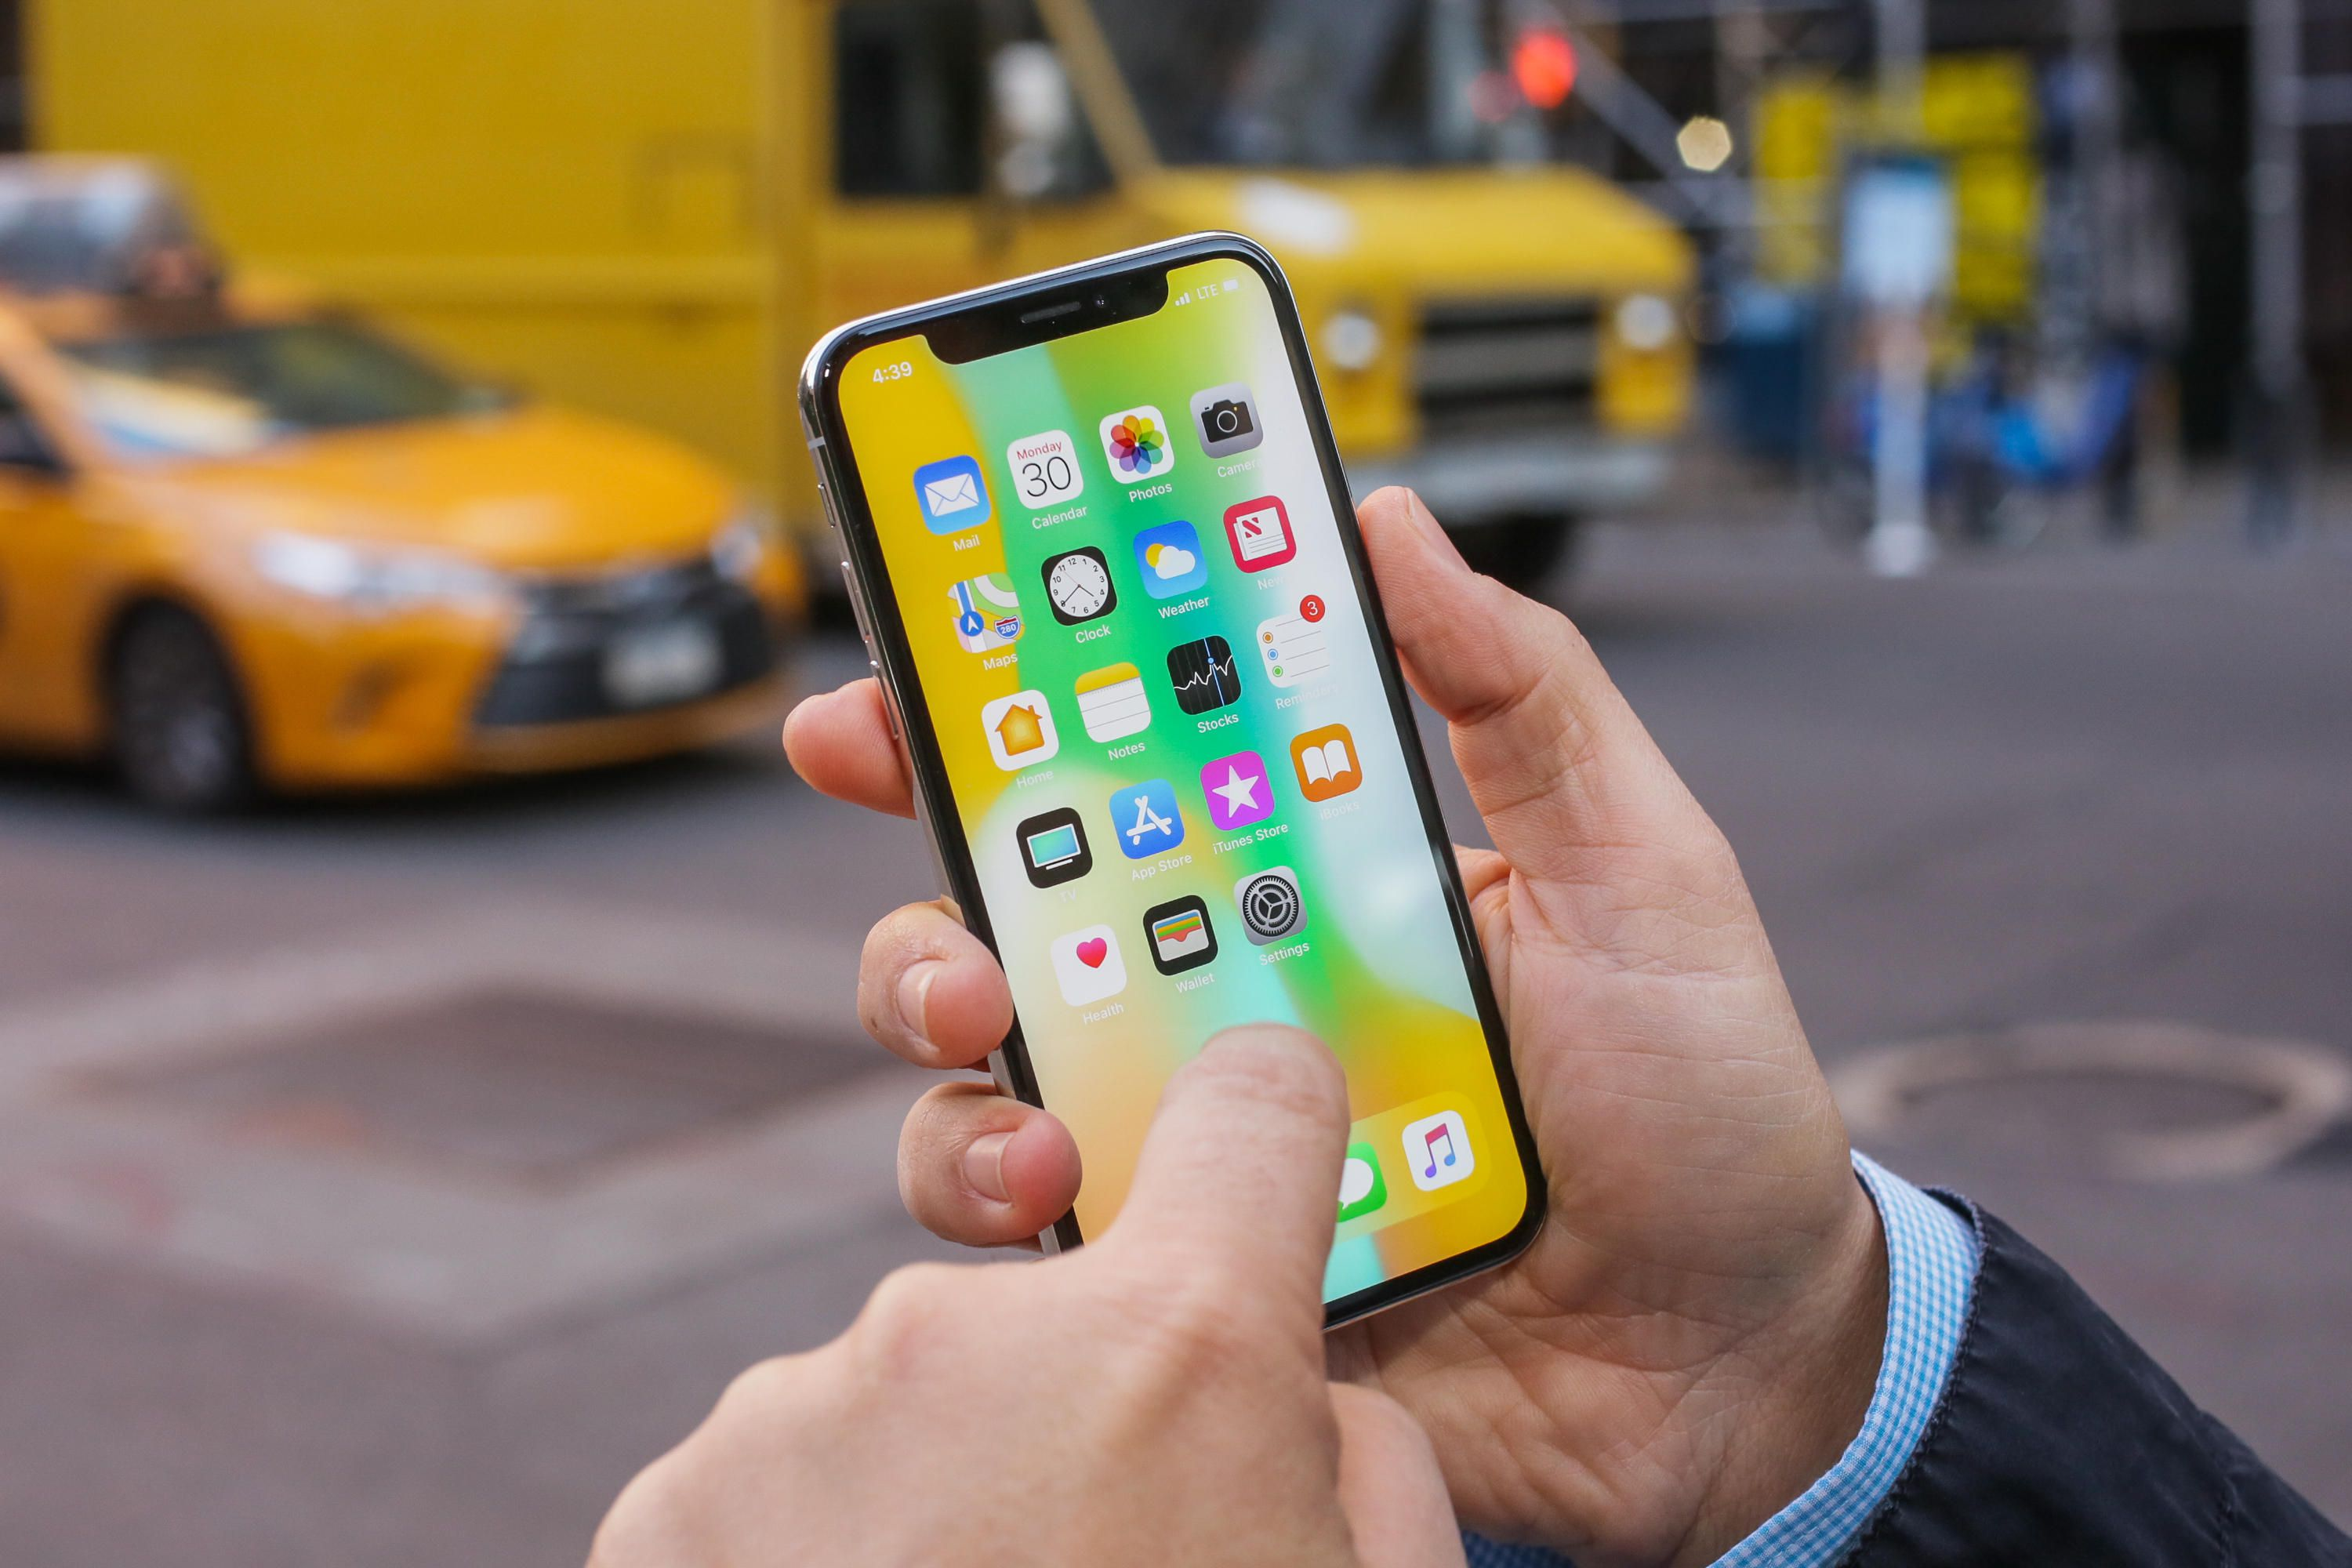 iPhone X Will Be Killed Before The End of 2018